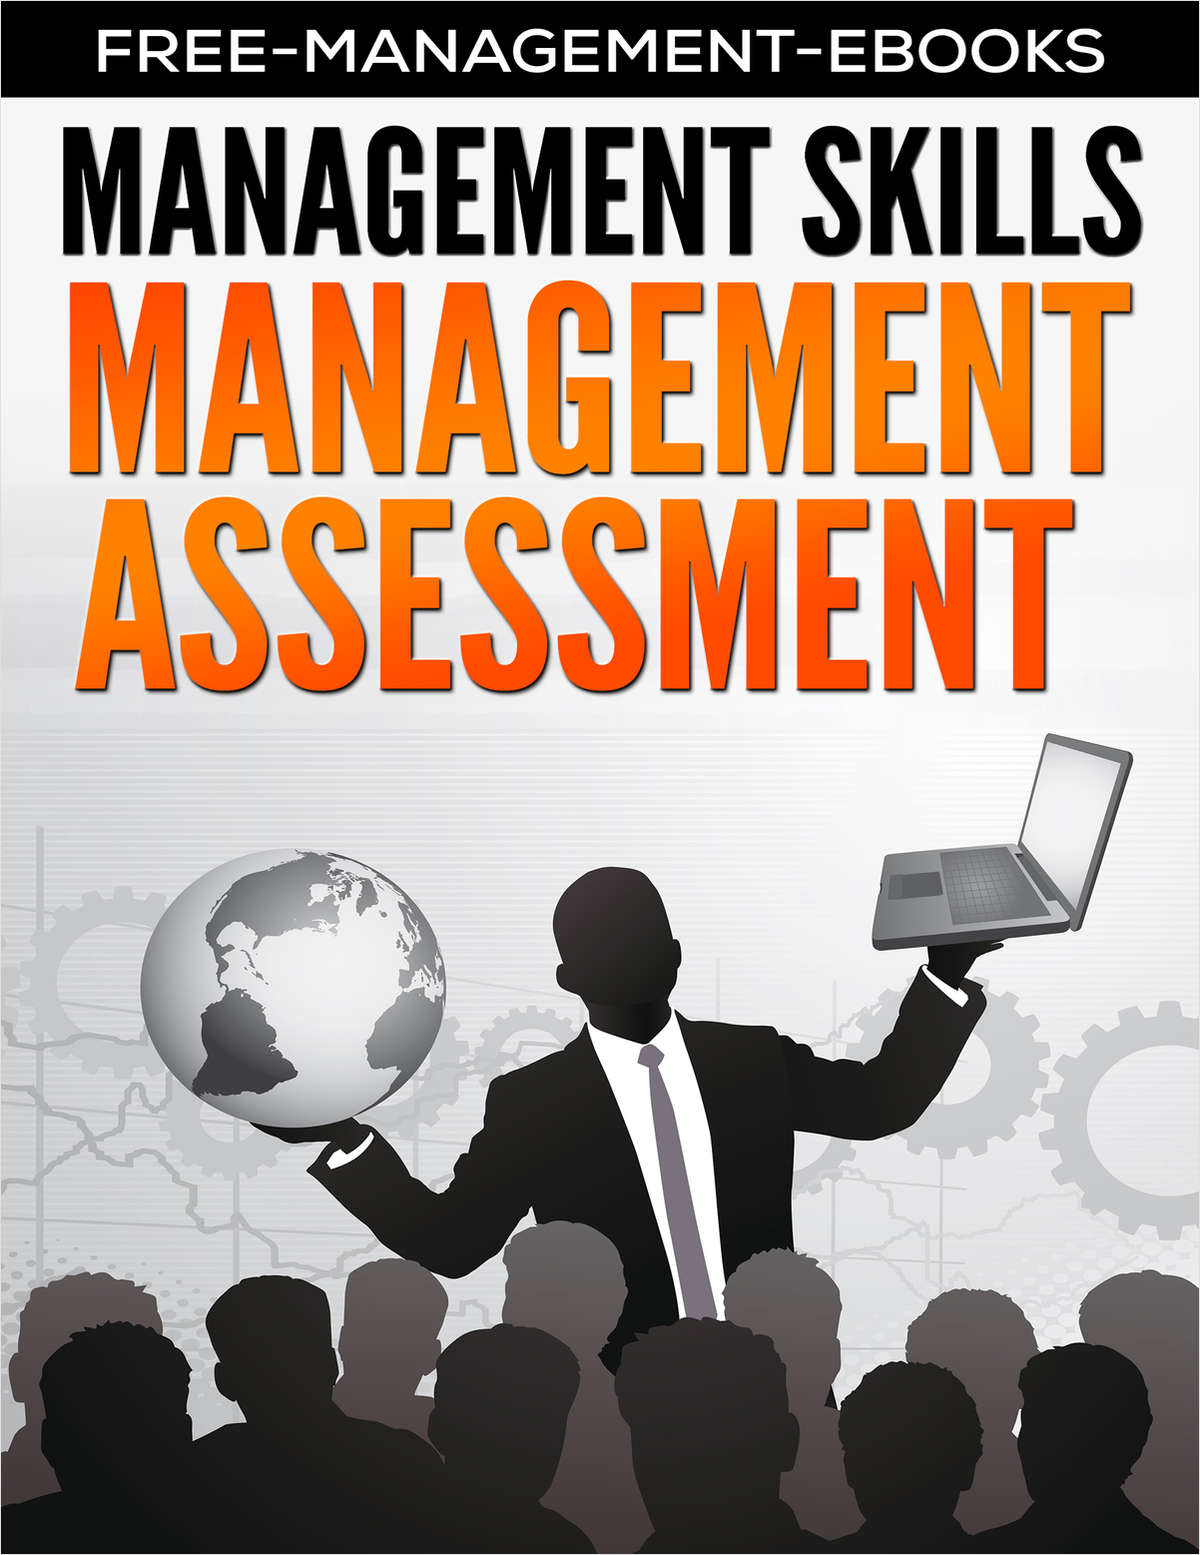 Management Assessment - Developing Your Management Skills